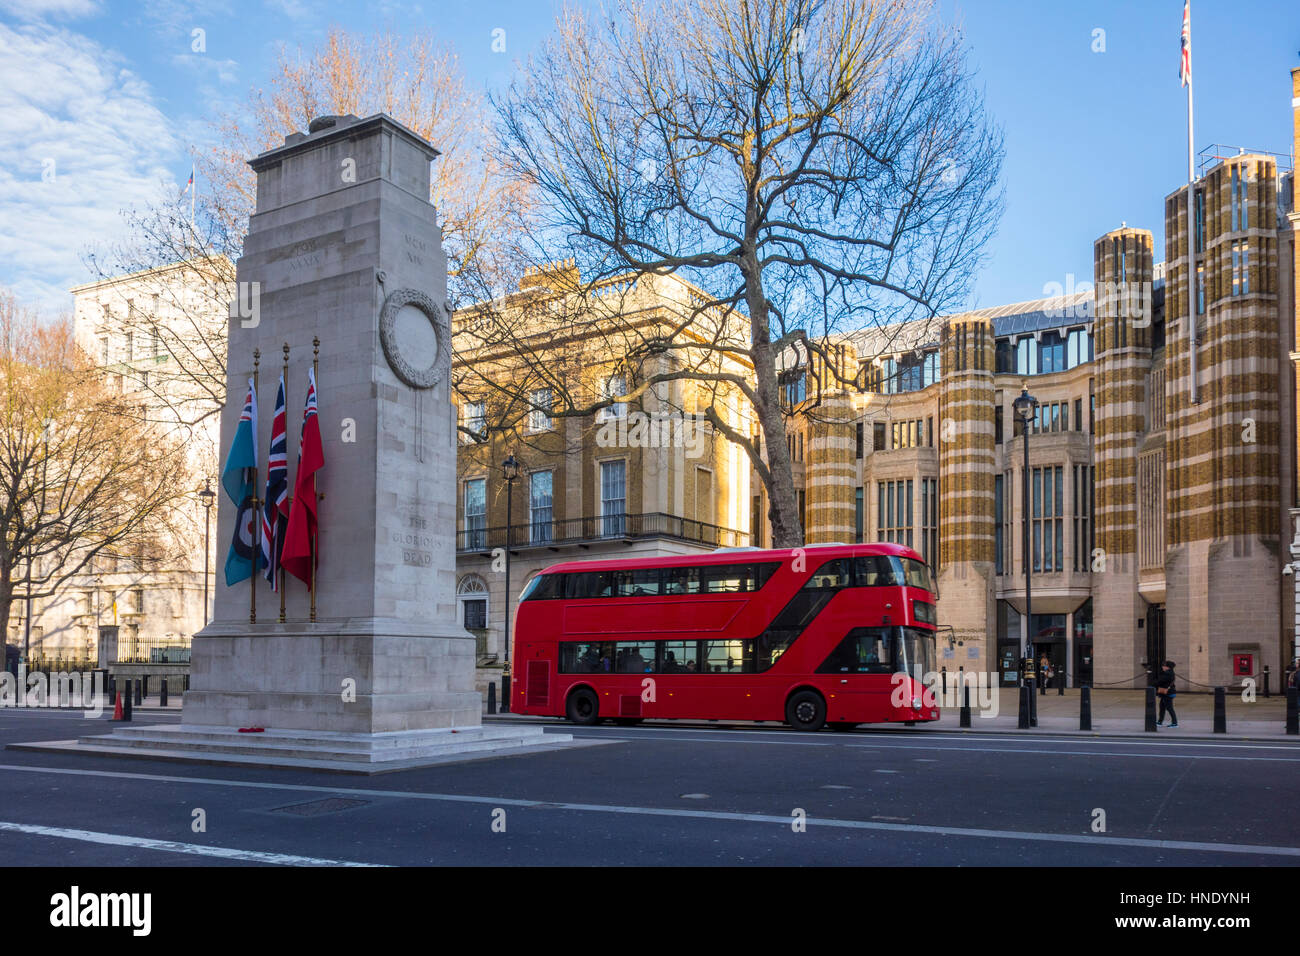 New routemaster red bus next to the Cenotaph on Whitehall. London, UK - Stock Image